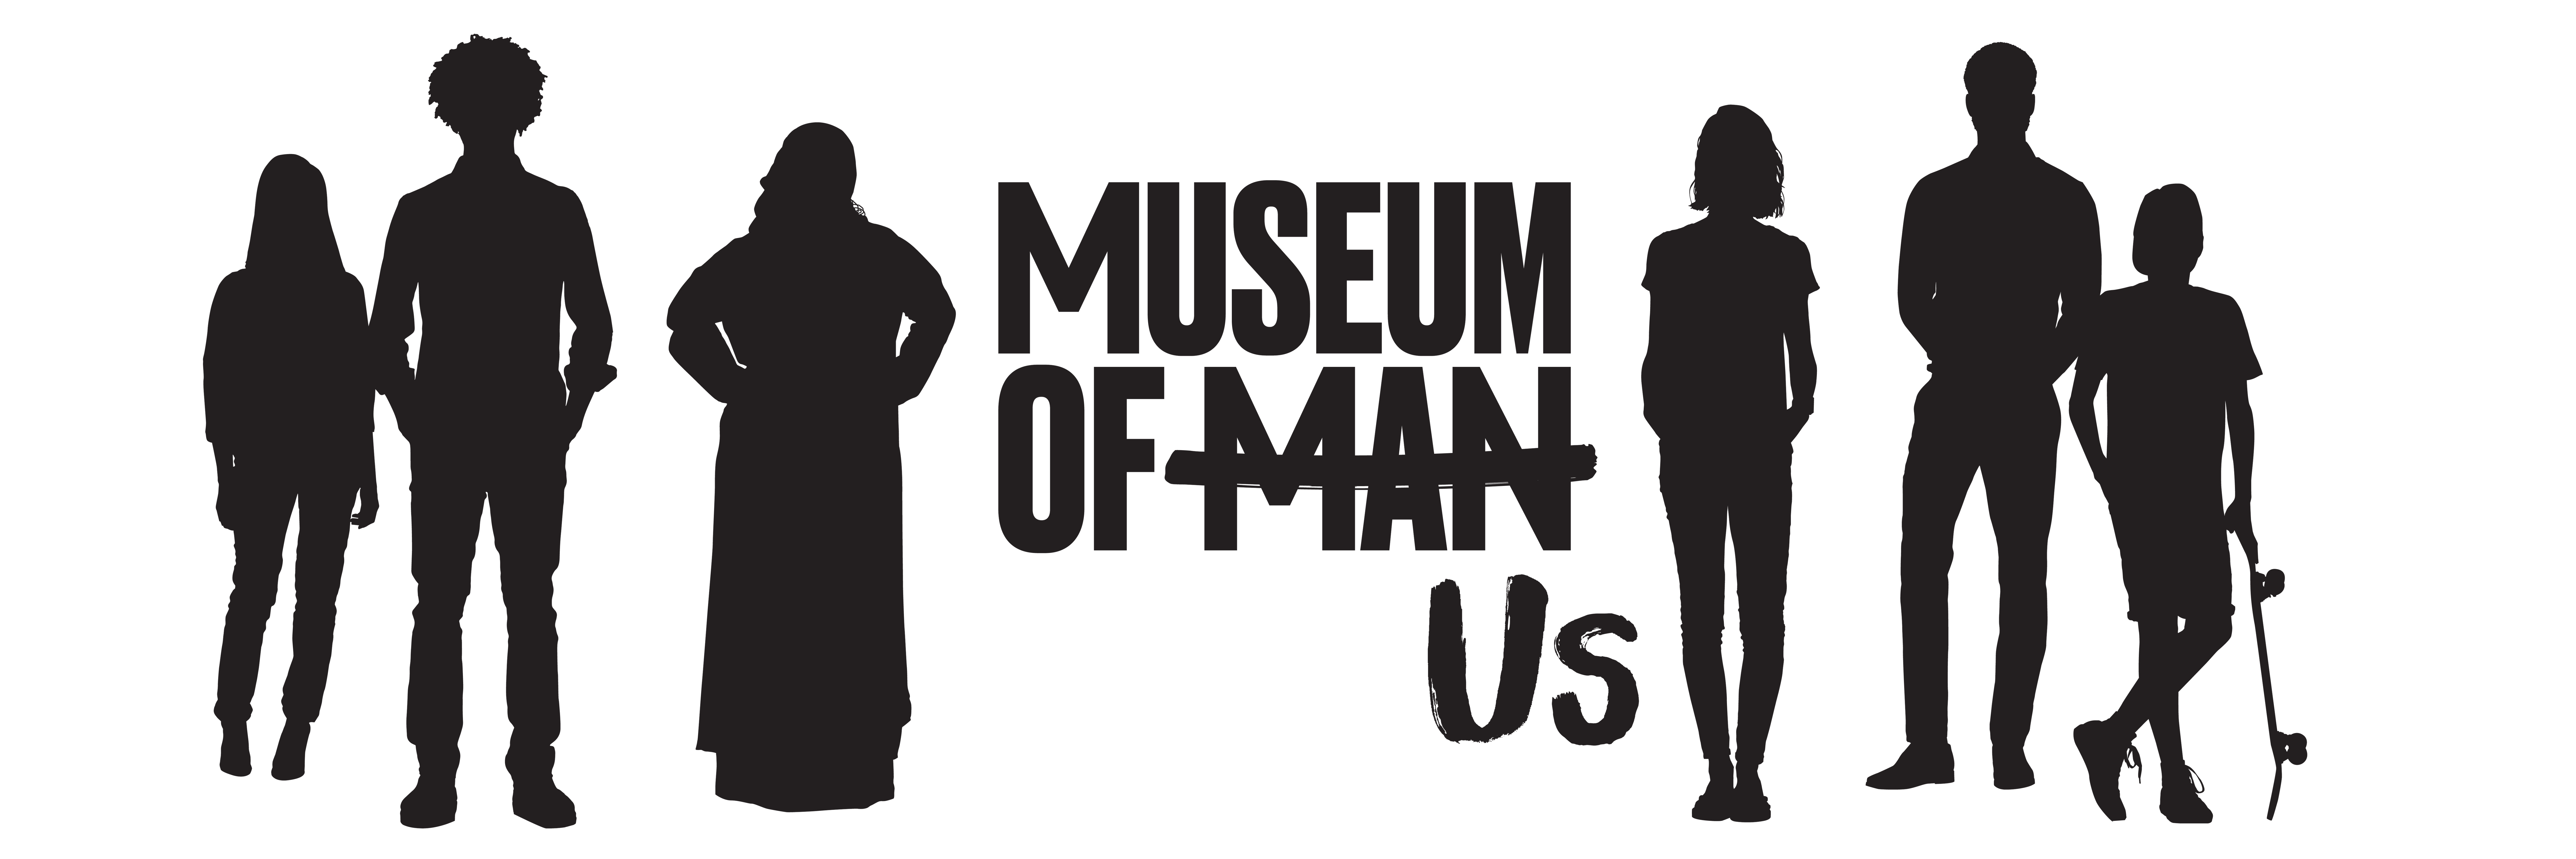 Find tickets from San Diego Museum of Man